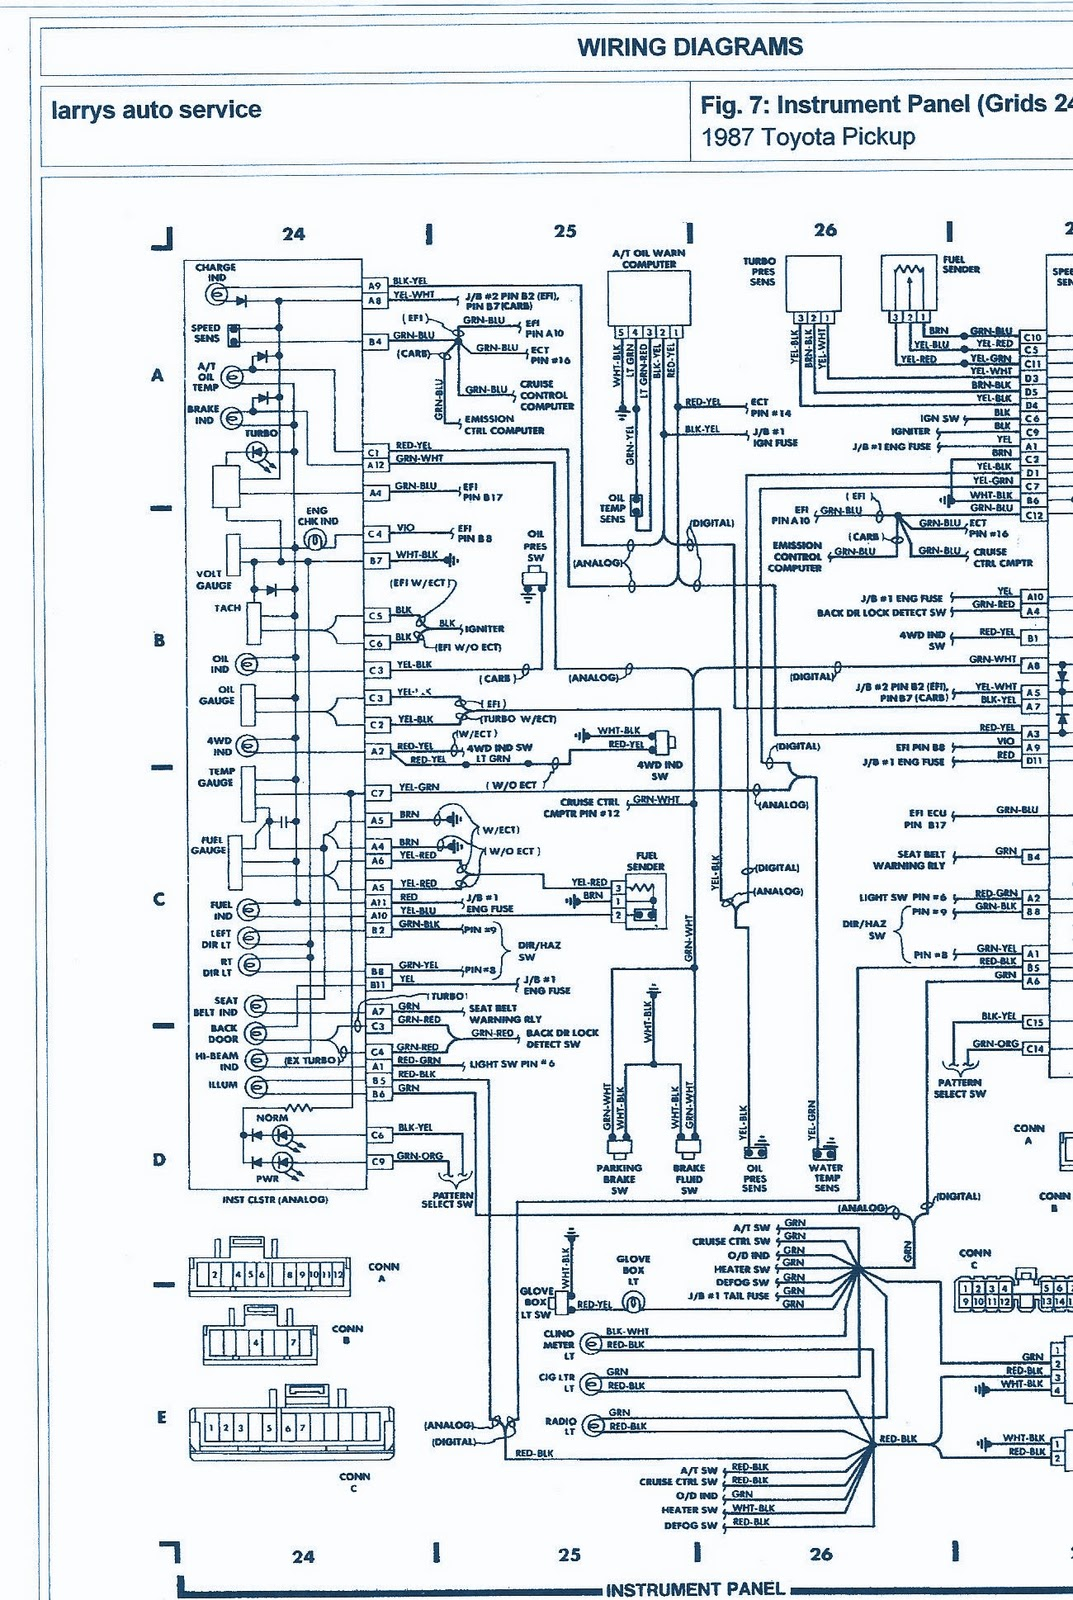 1985 Toyota Ecu Wiring Diagram Electrical Diagrams Wire Harness Build 1994 Pickup Power Window Diy Enthusiasts 92